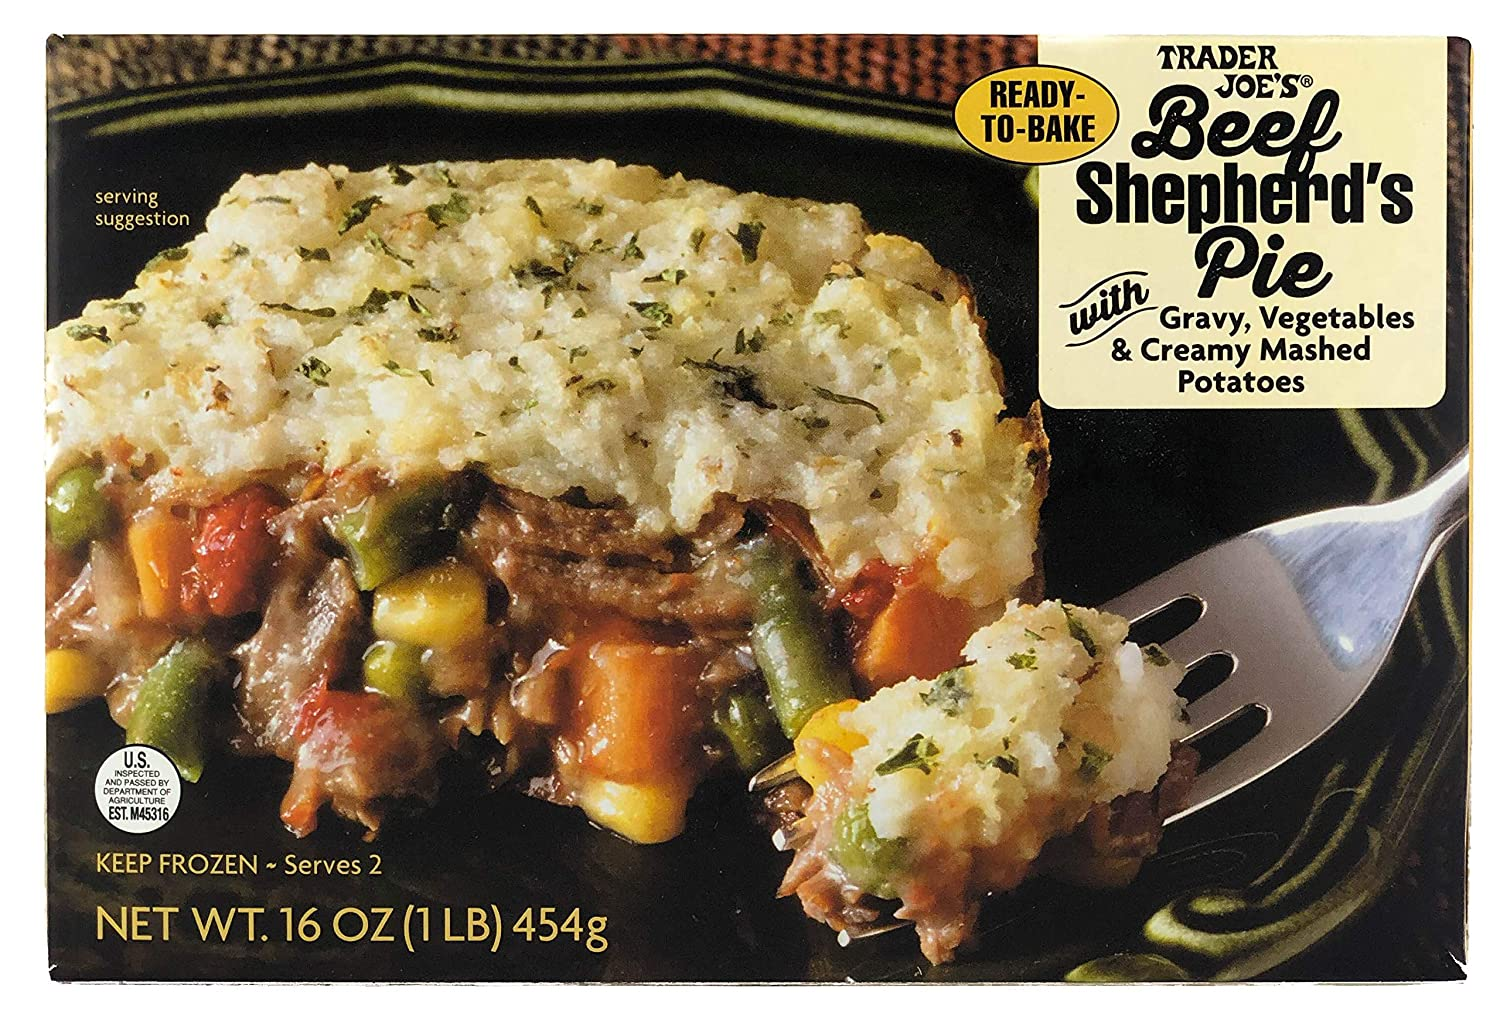 Superb Trader Joes Beef Shepherds Pie With Gravy Vegetables Creamy Mashed Potatoes 4 Pack Home Interior And Landscaping Ponolsignezvosmurscom